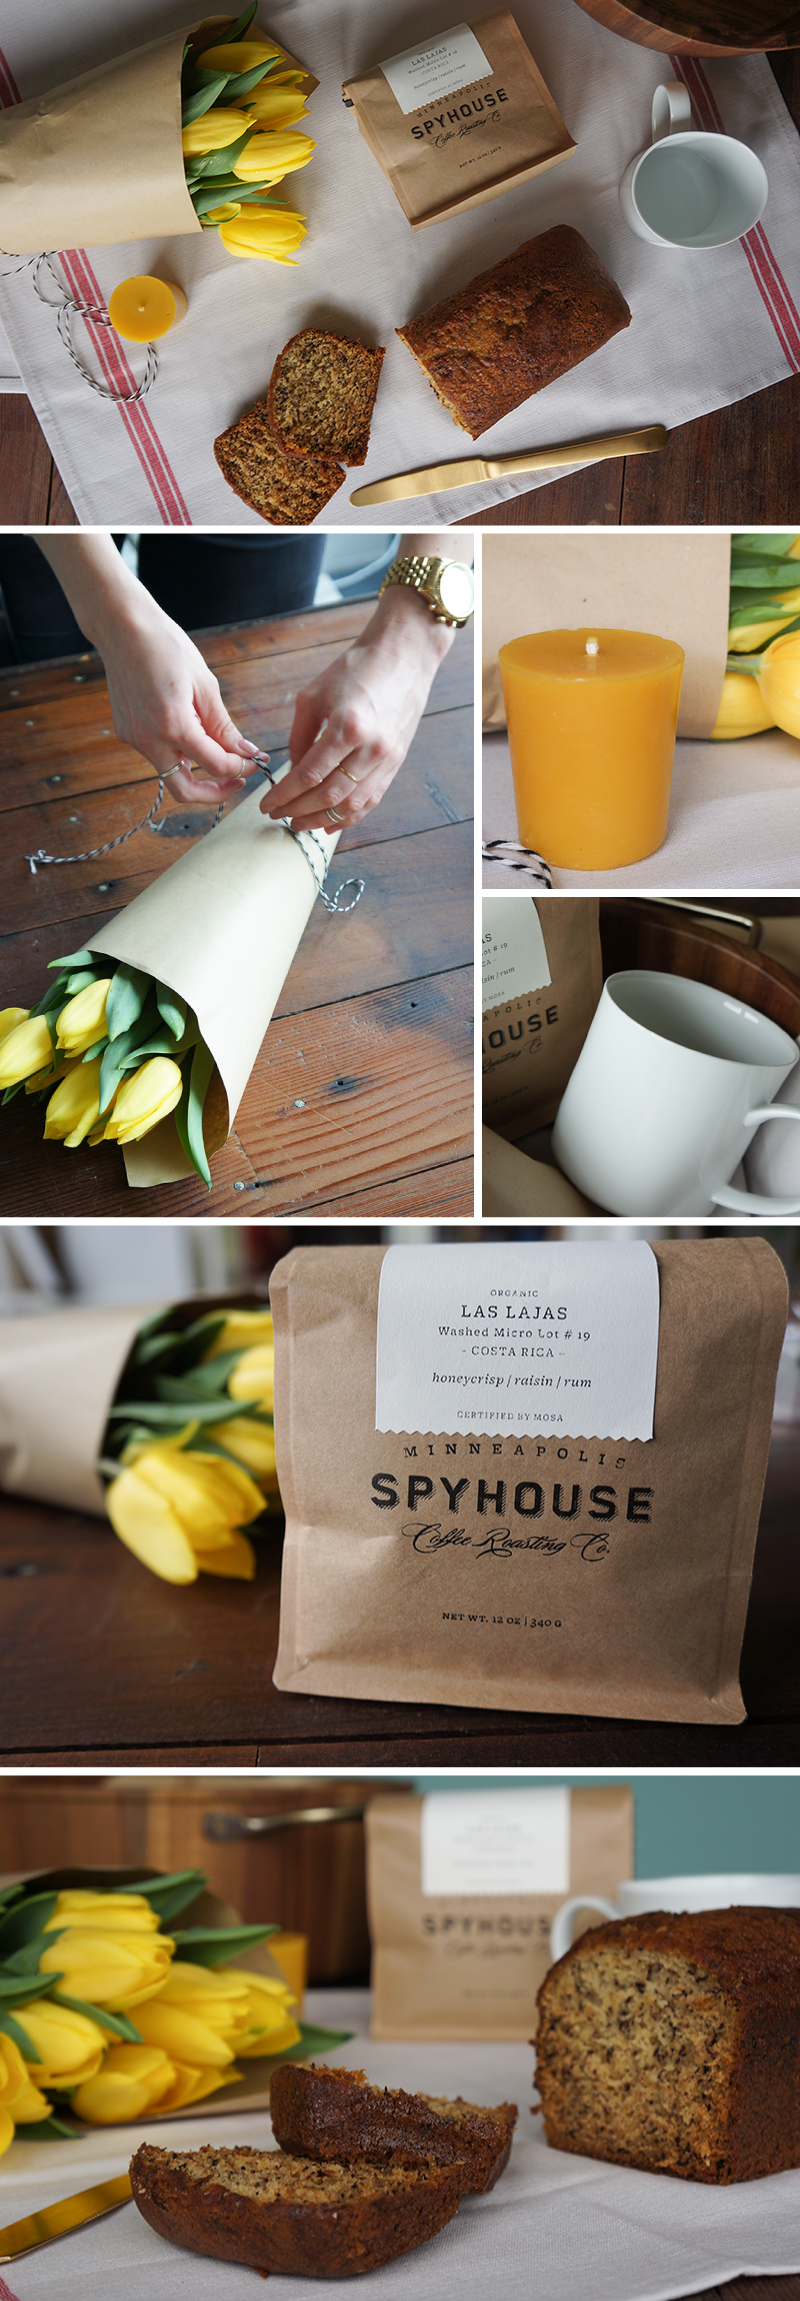 Mothers Day Gift Idea - from Style-Architects